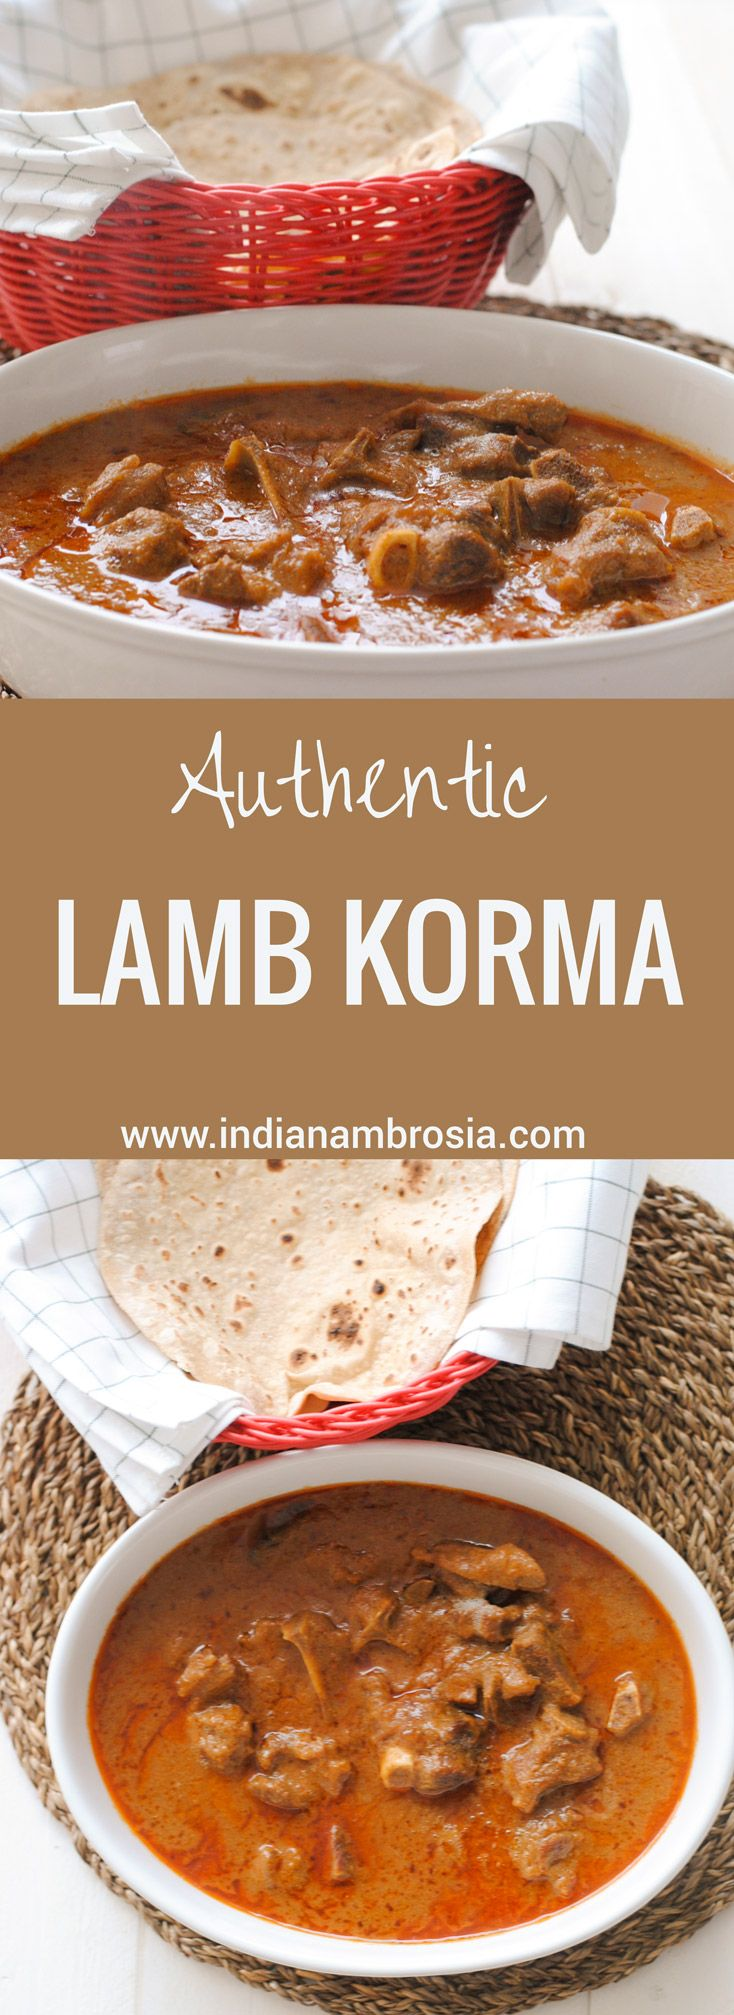 A lamb korma recipe that's as authentic as it gets.. right from the kitchens of North India. #muttonrecipes, #lamb, #authenticindianfood, #korma.